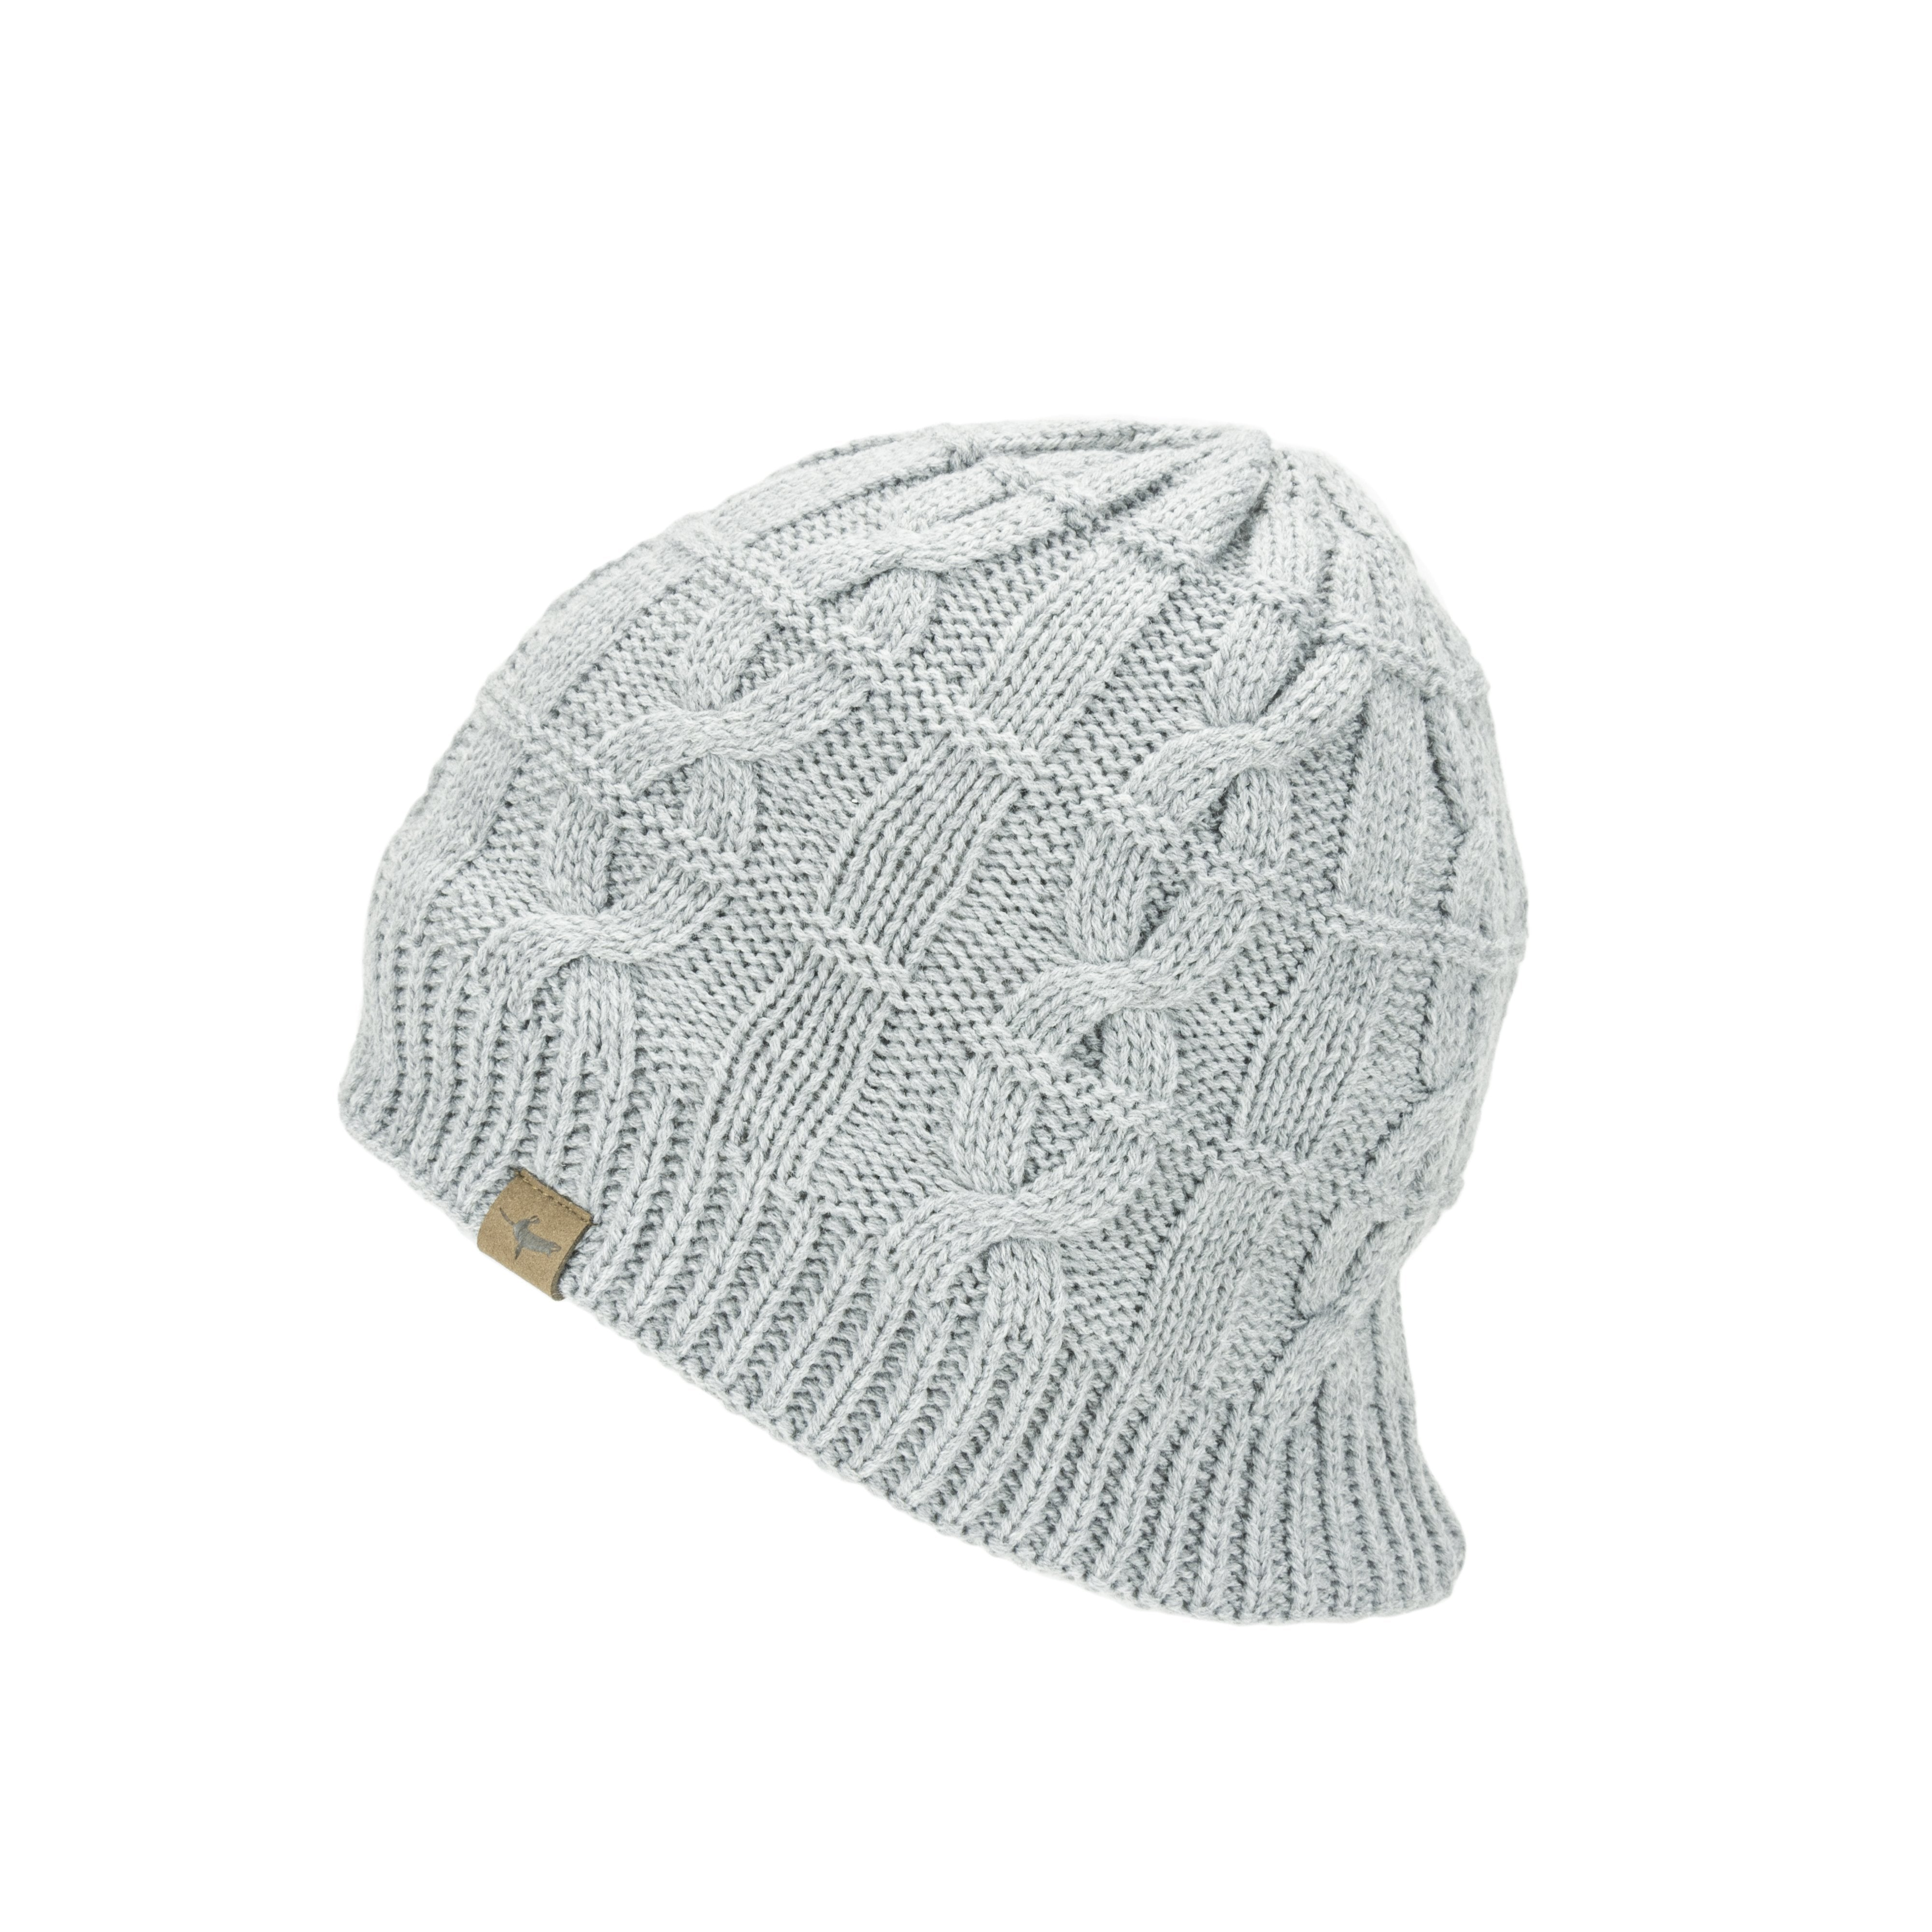 Waterproof Cold Weather Cable Knit Beanie Hat